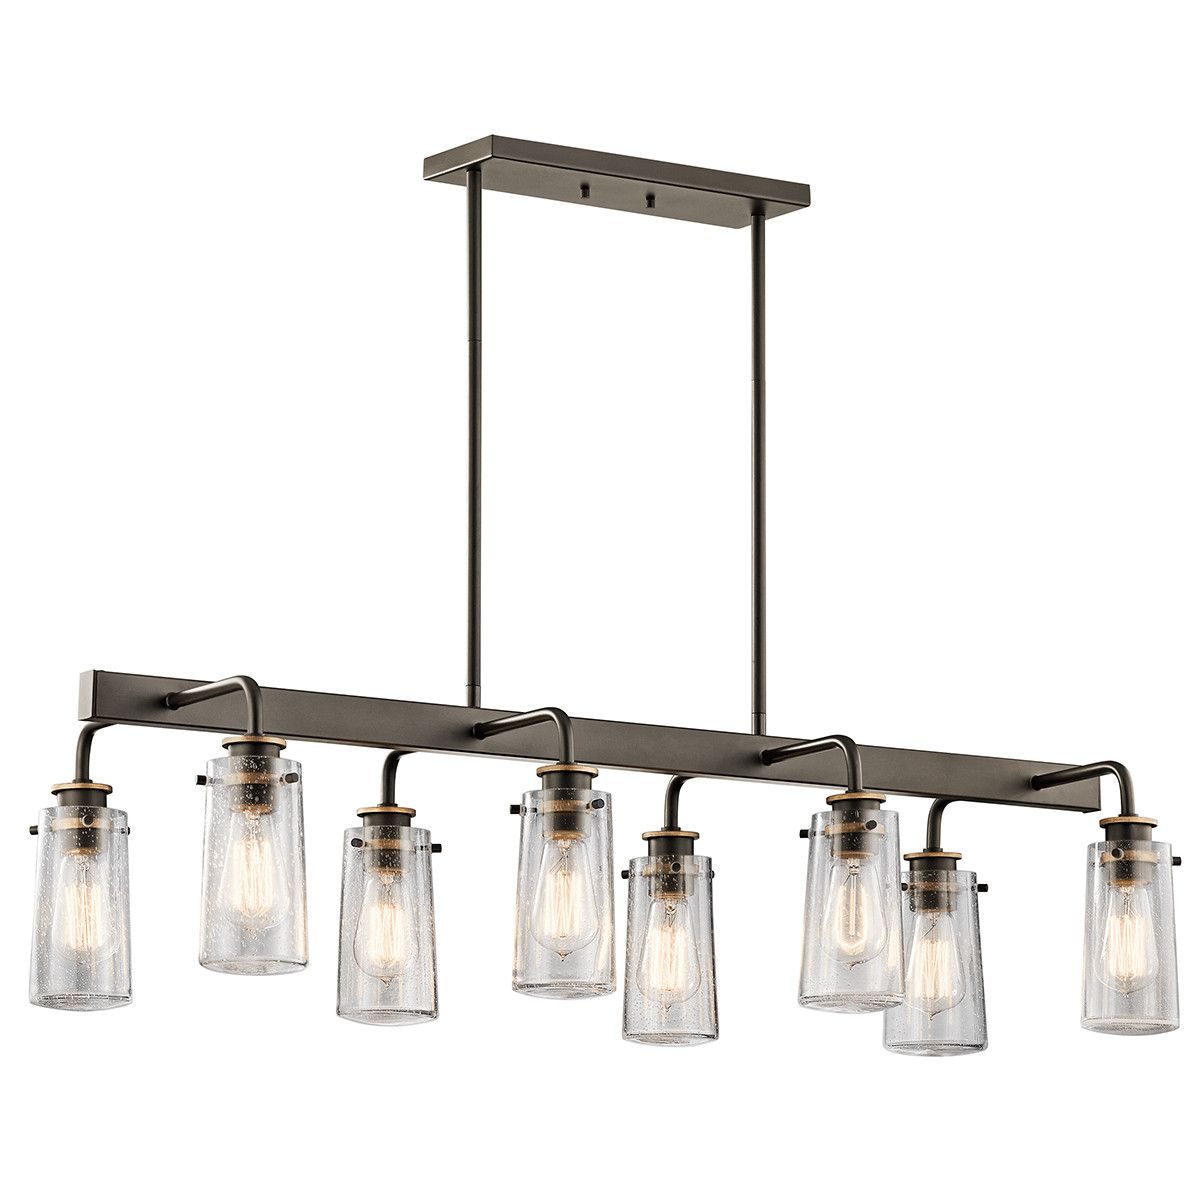 Features:  -Braelyn collection.  -Number of lights: 8.  -Finish: Bronze.  -Shade type: Clear seeded.  -Dry location listed.  -Bulb type: 60W Medium bulb (not included).  Chandelier Type: -Linear Chand